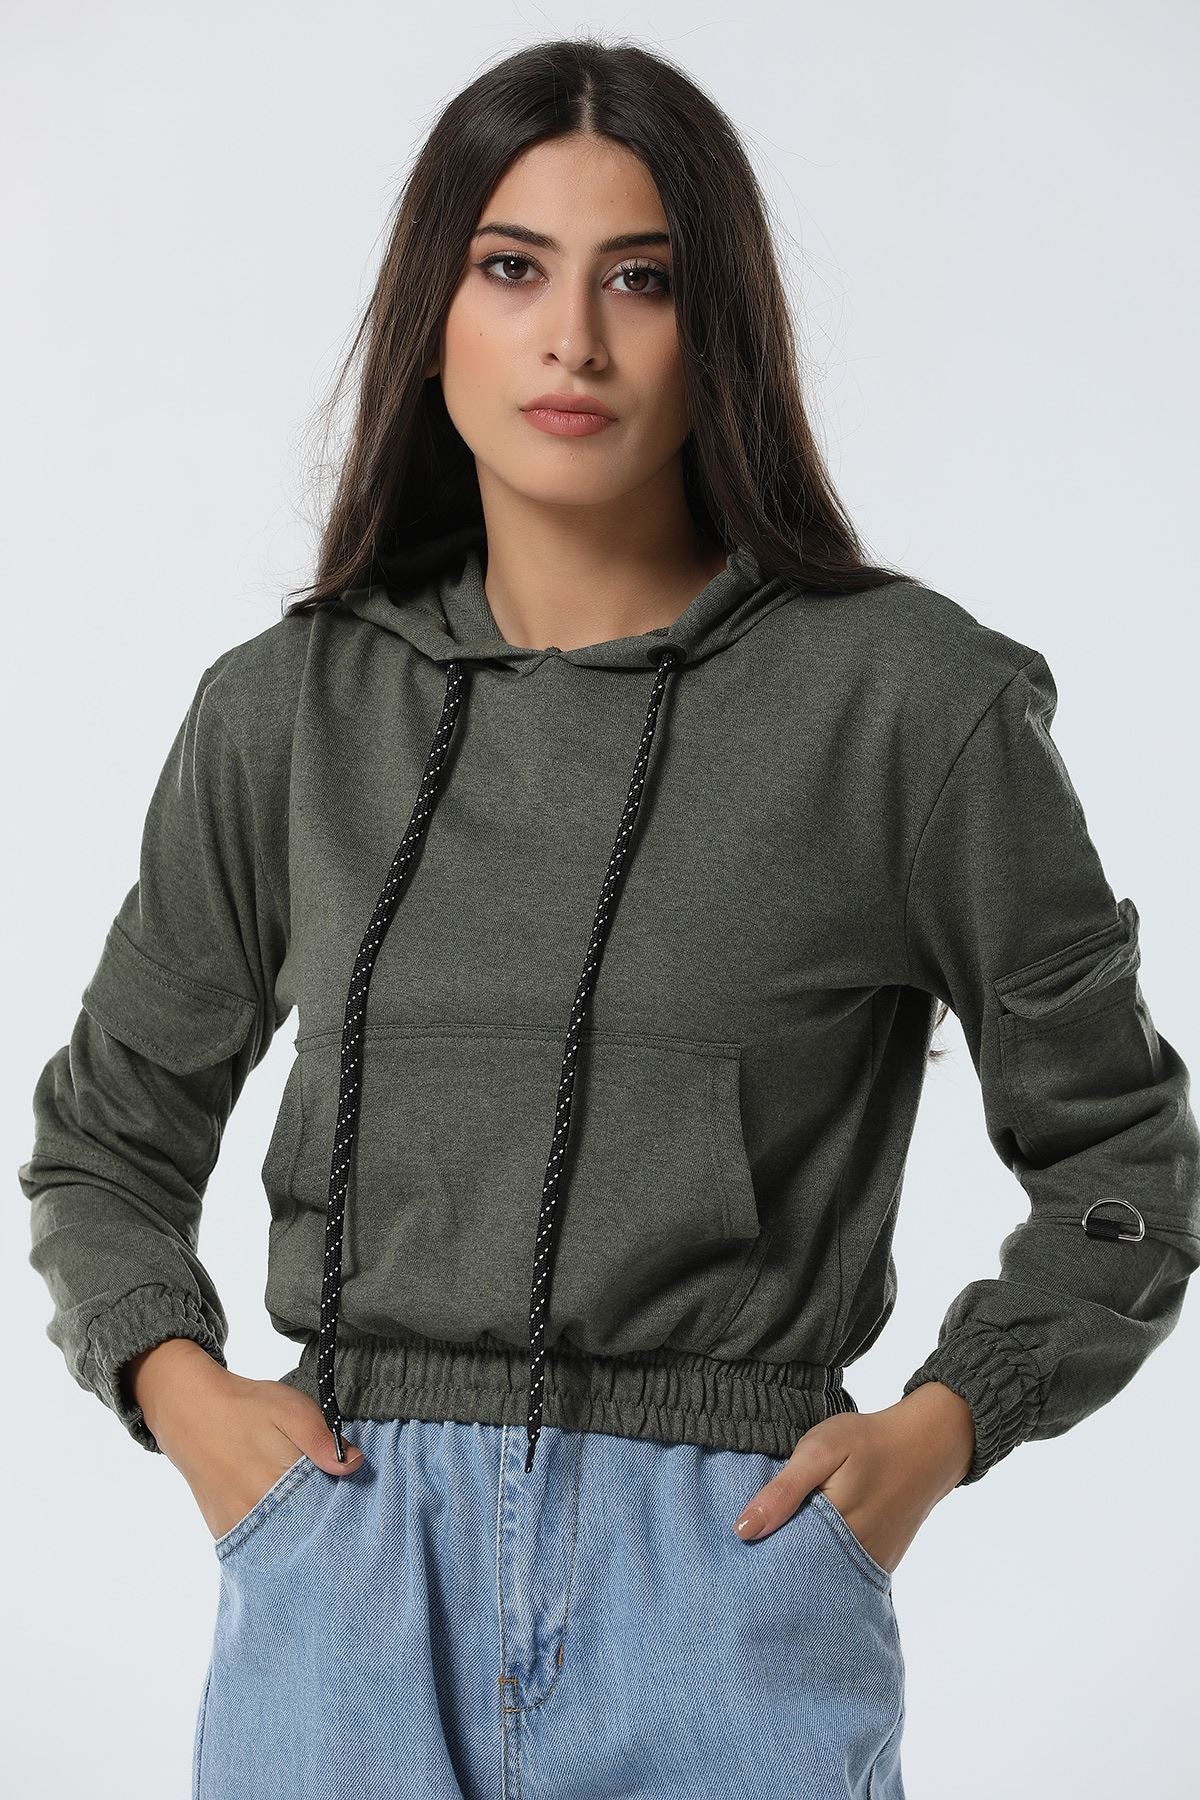 Women's Pocket Crop Sweatshirt